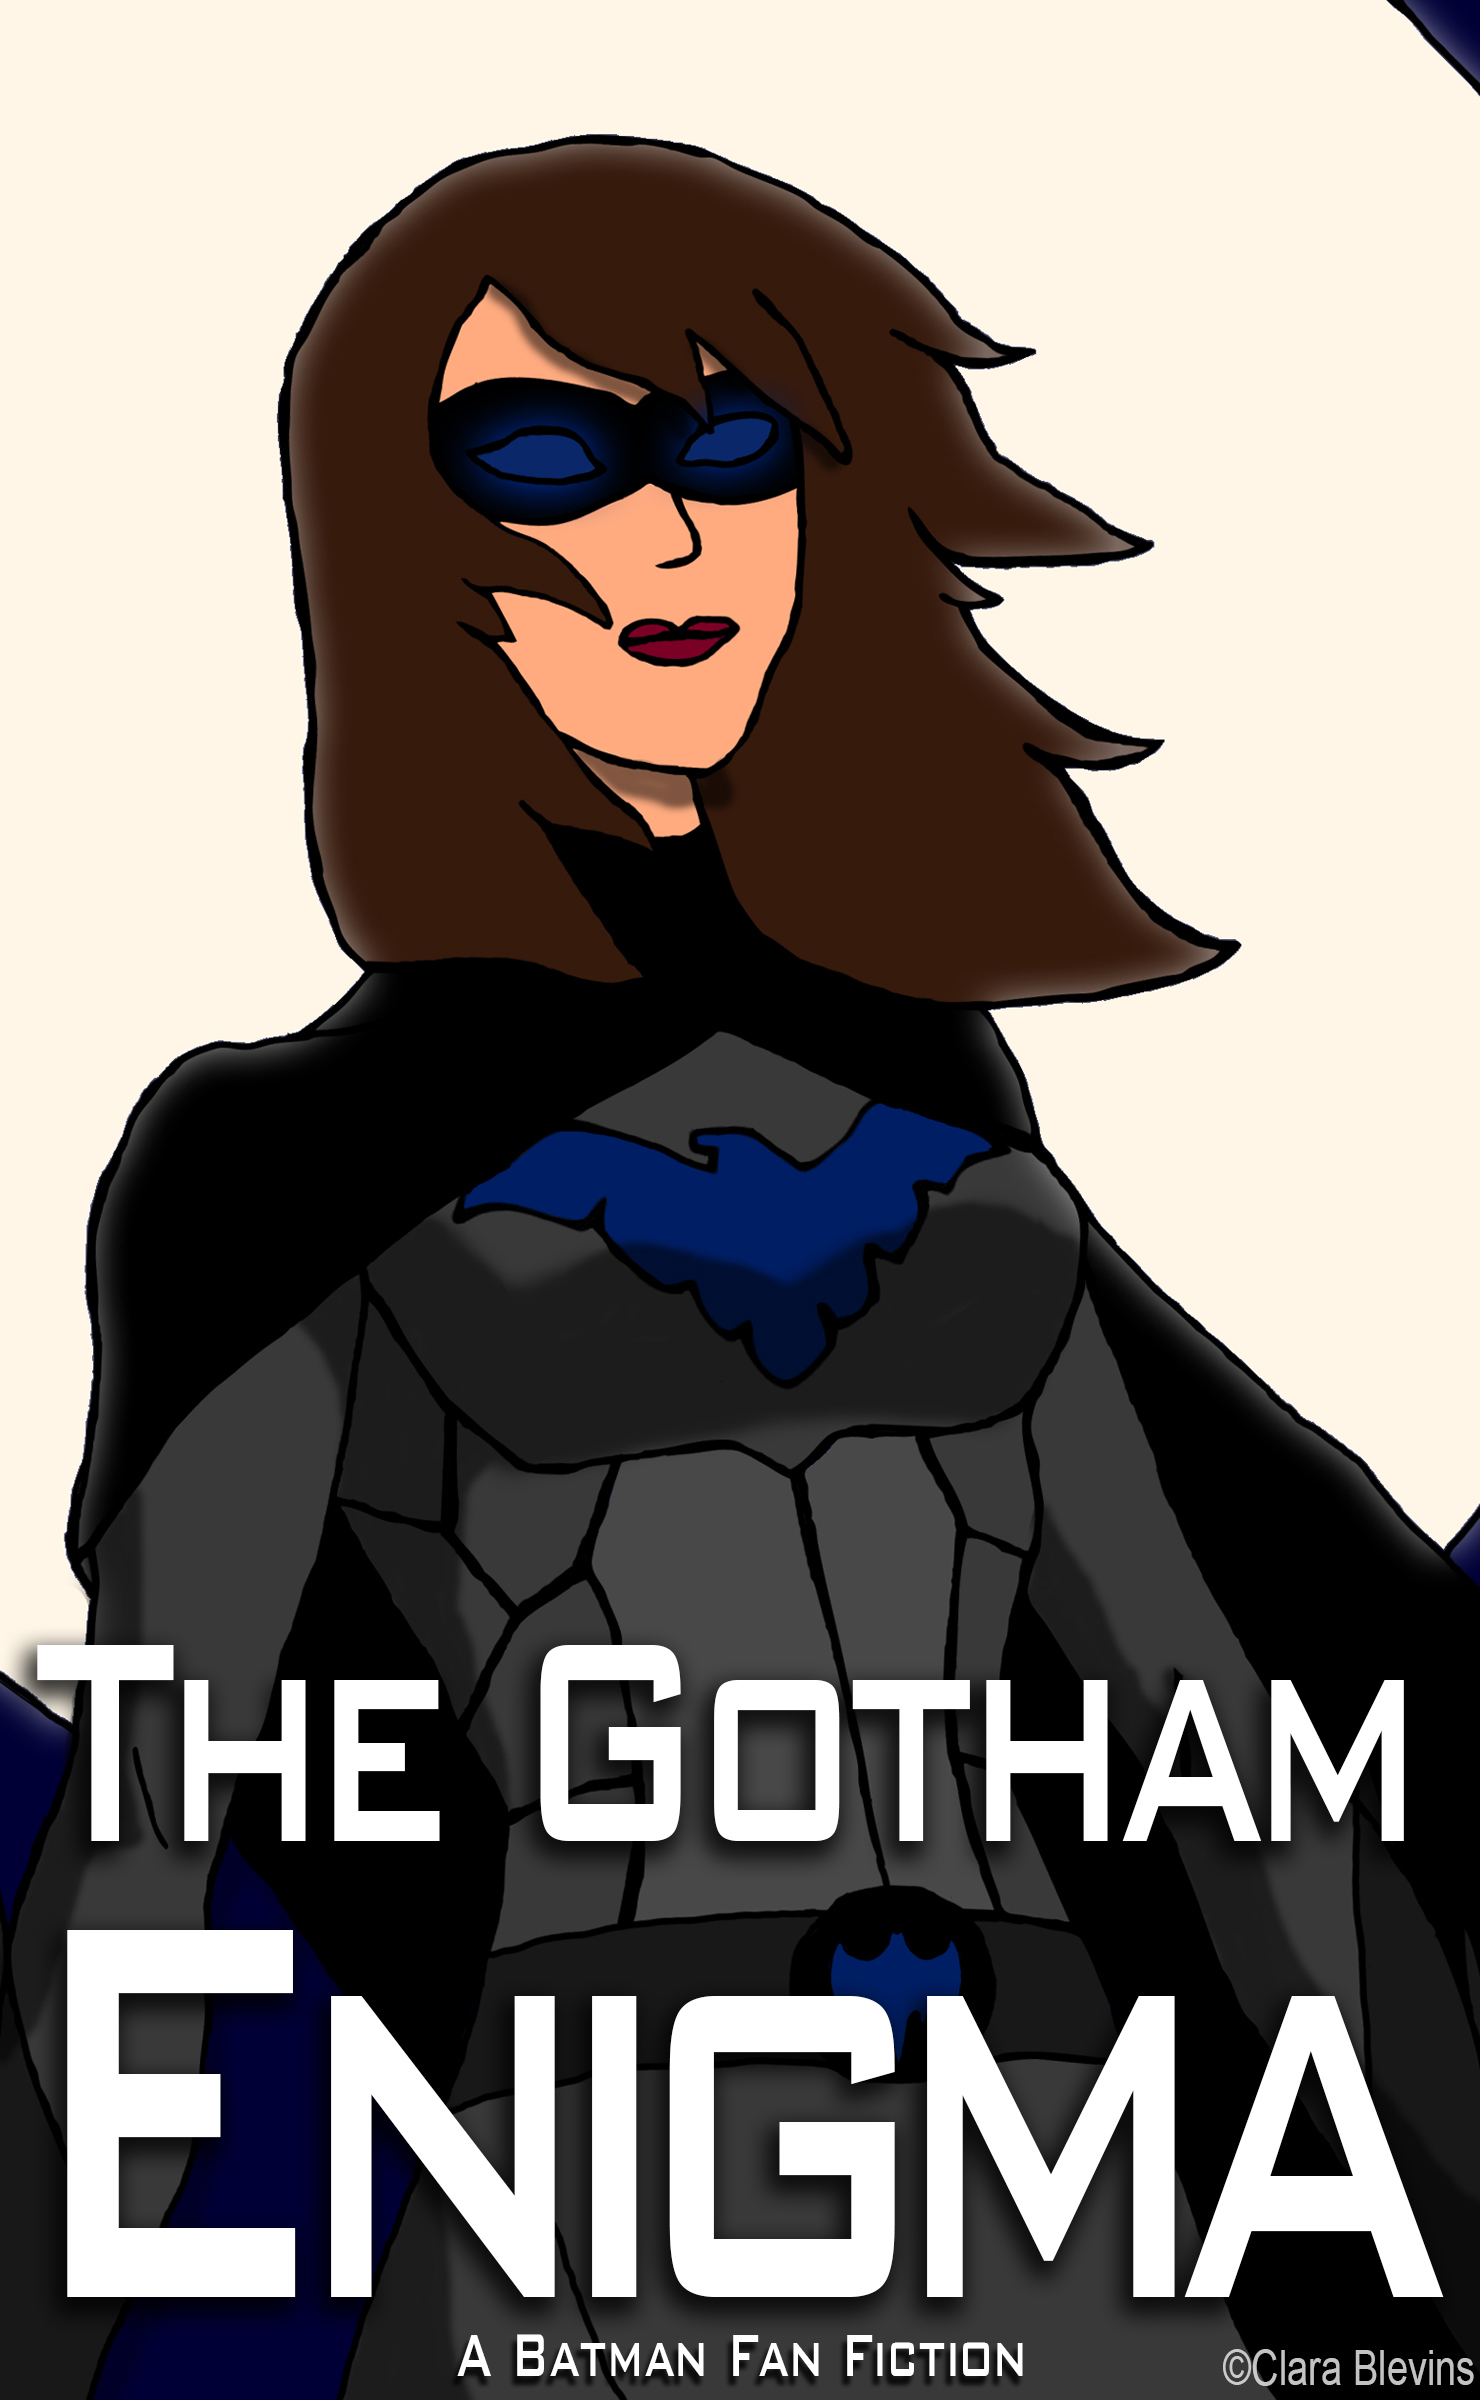 The Gotham Enigma, Chapter 9 (part 1)